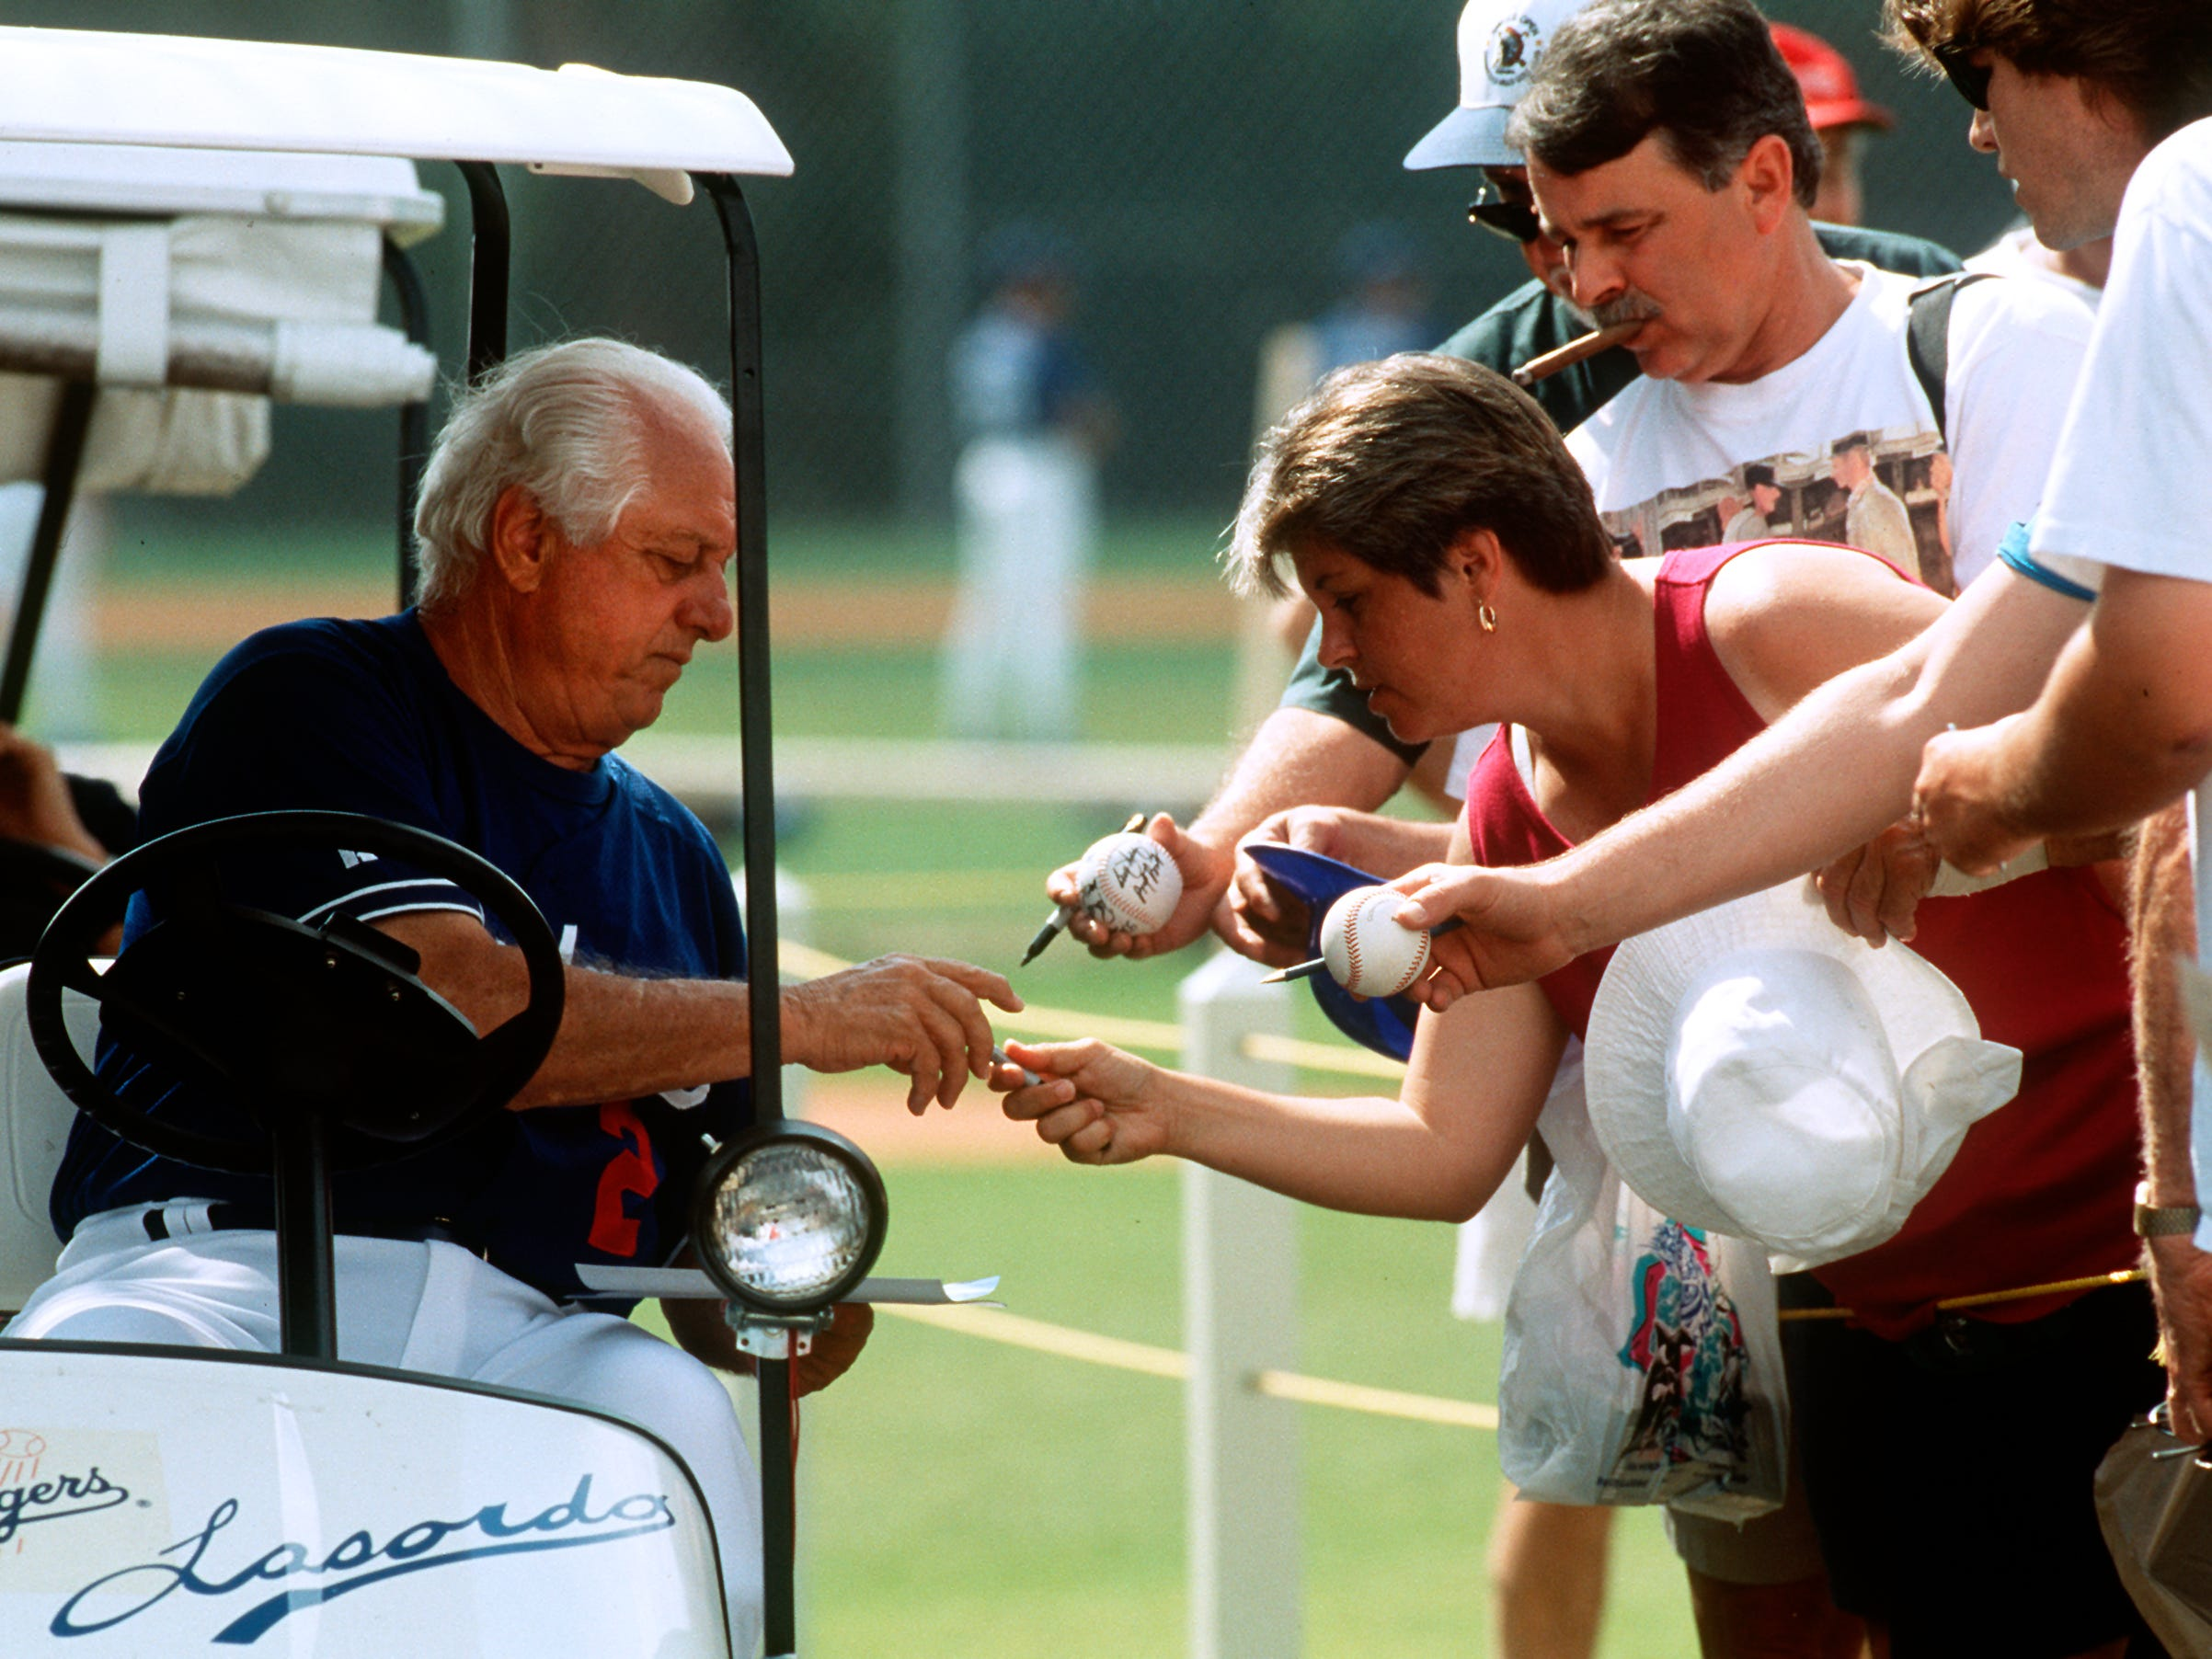 Dodgers manager Tommy Lasorda signs autographs during spring training in Vero Beach at Dodgertown in March 1996.